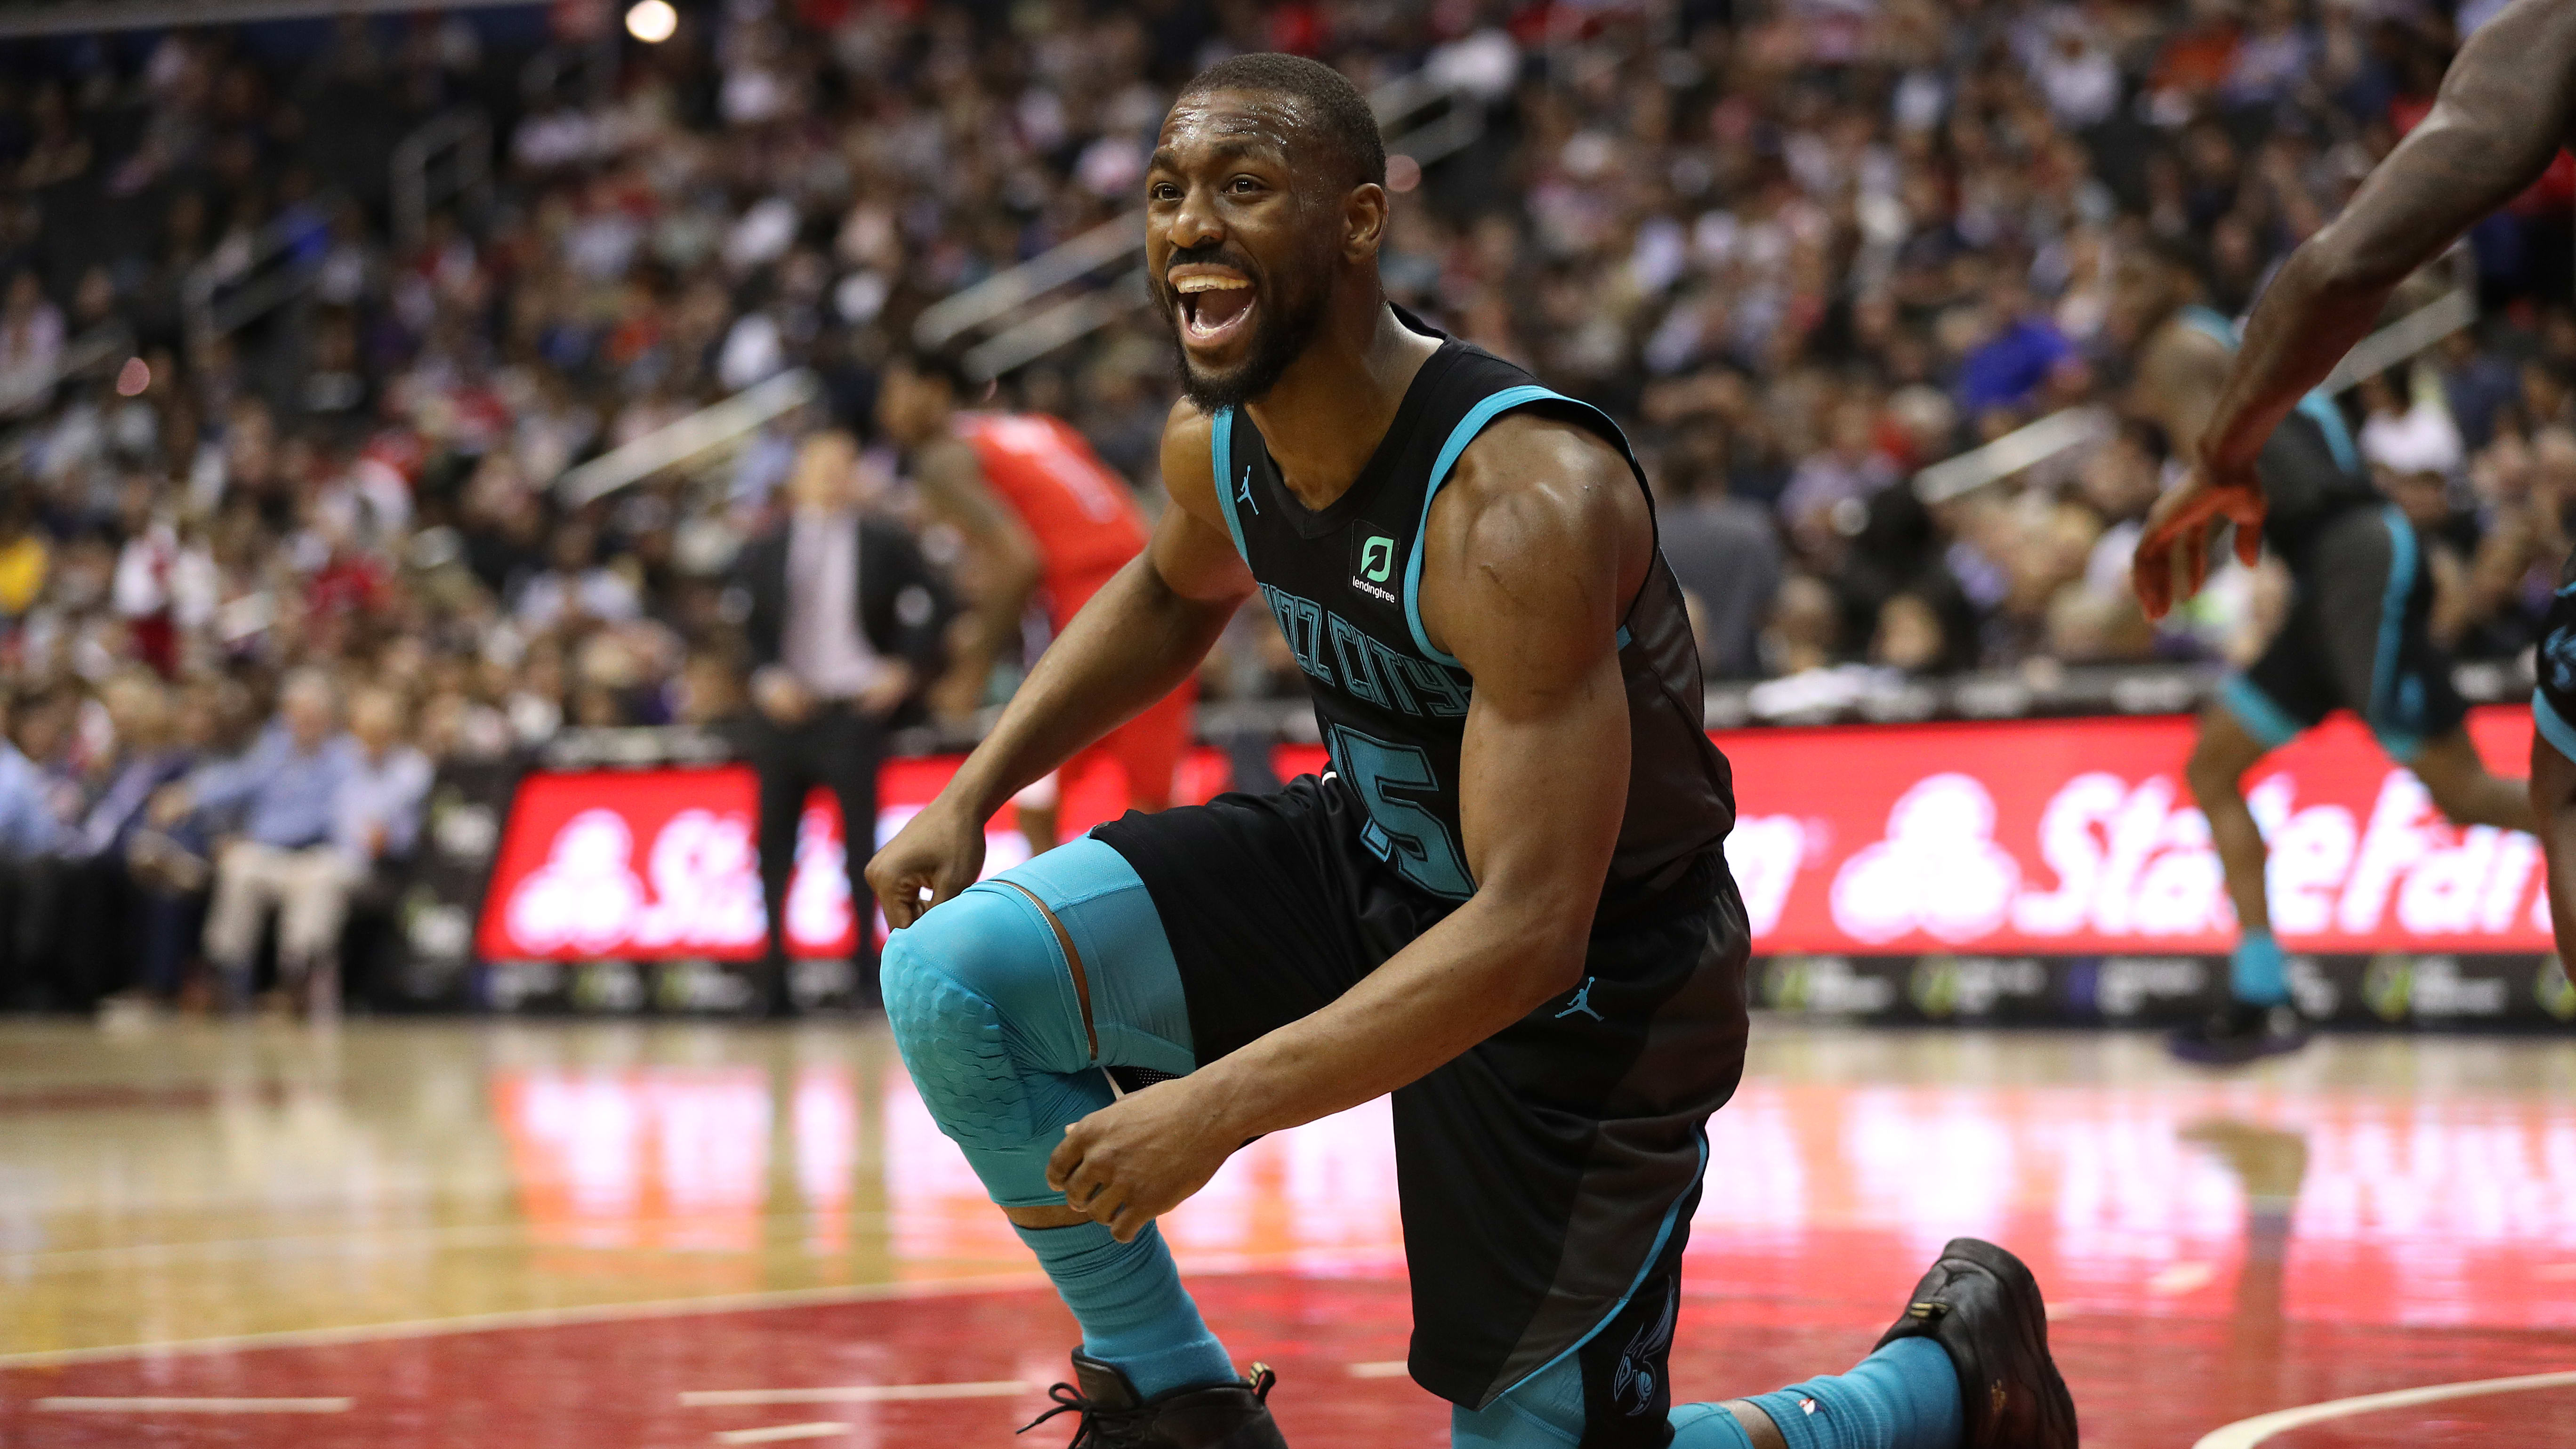 WASHINGTON, DC - MARCH 15: Kemba Walker #15 of the Charlotte Hornets reacts against the Washington Wizards during the first half at Capital One Arena on March 15, 2019 in Washington, DC. NOTE TO USER: User expressly acknowledges and agrees that, by downloading and or using this photograph, User is consenting to the terms and conditions of the Getty Images License Agreement. (Photo by Patrick Smith/Getty Images)